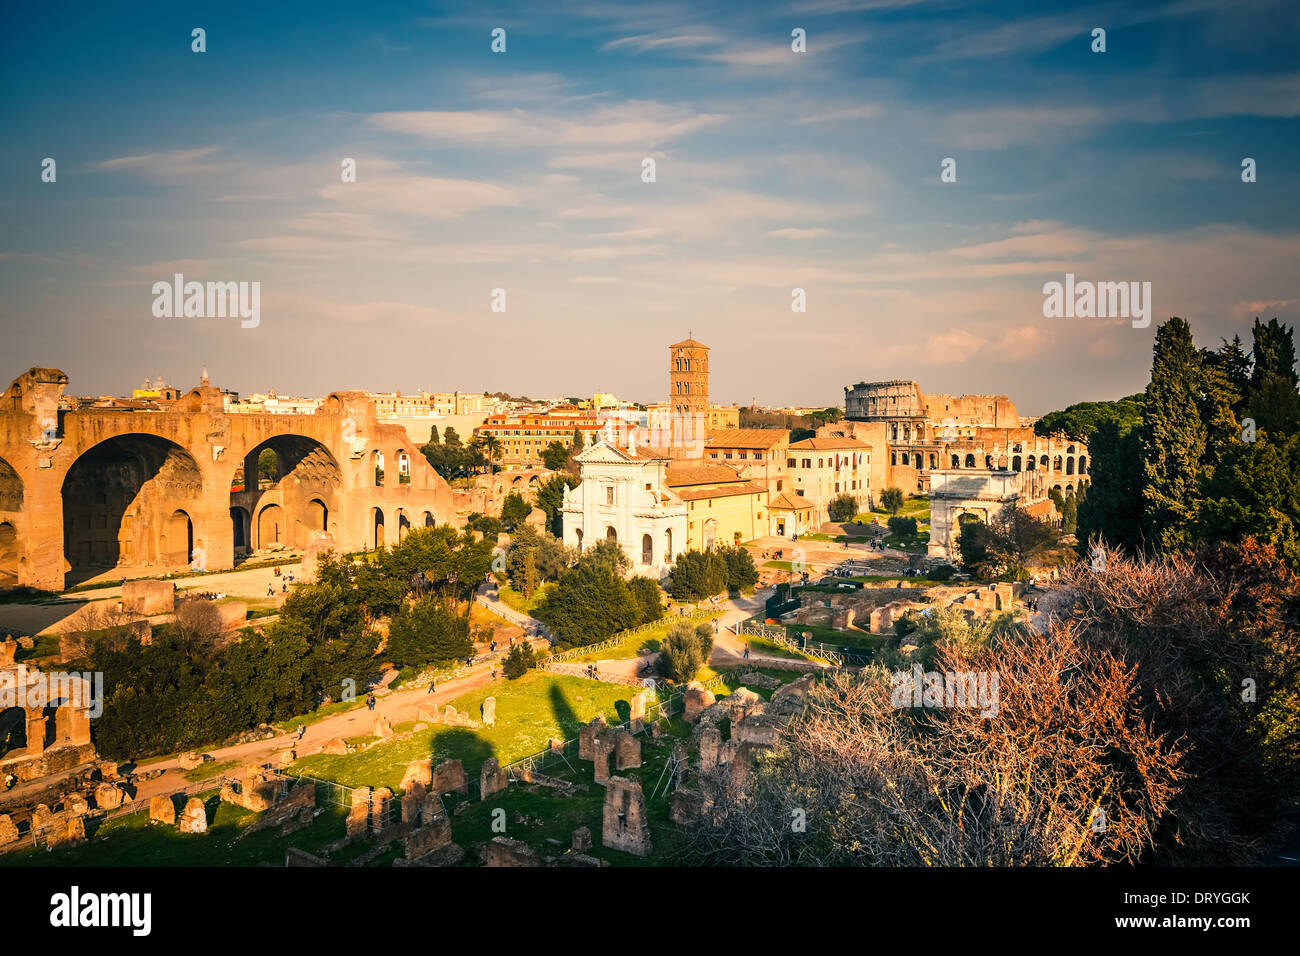 Forum and Coliseum in Rome - Stock Image